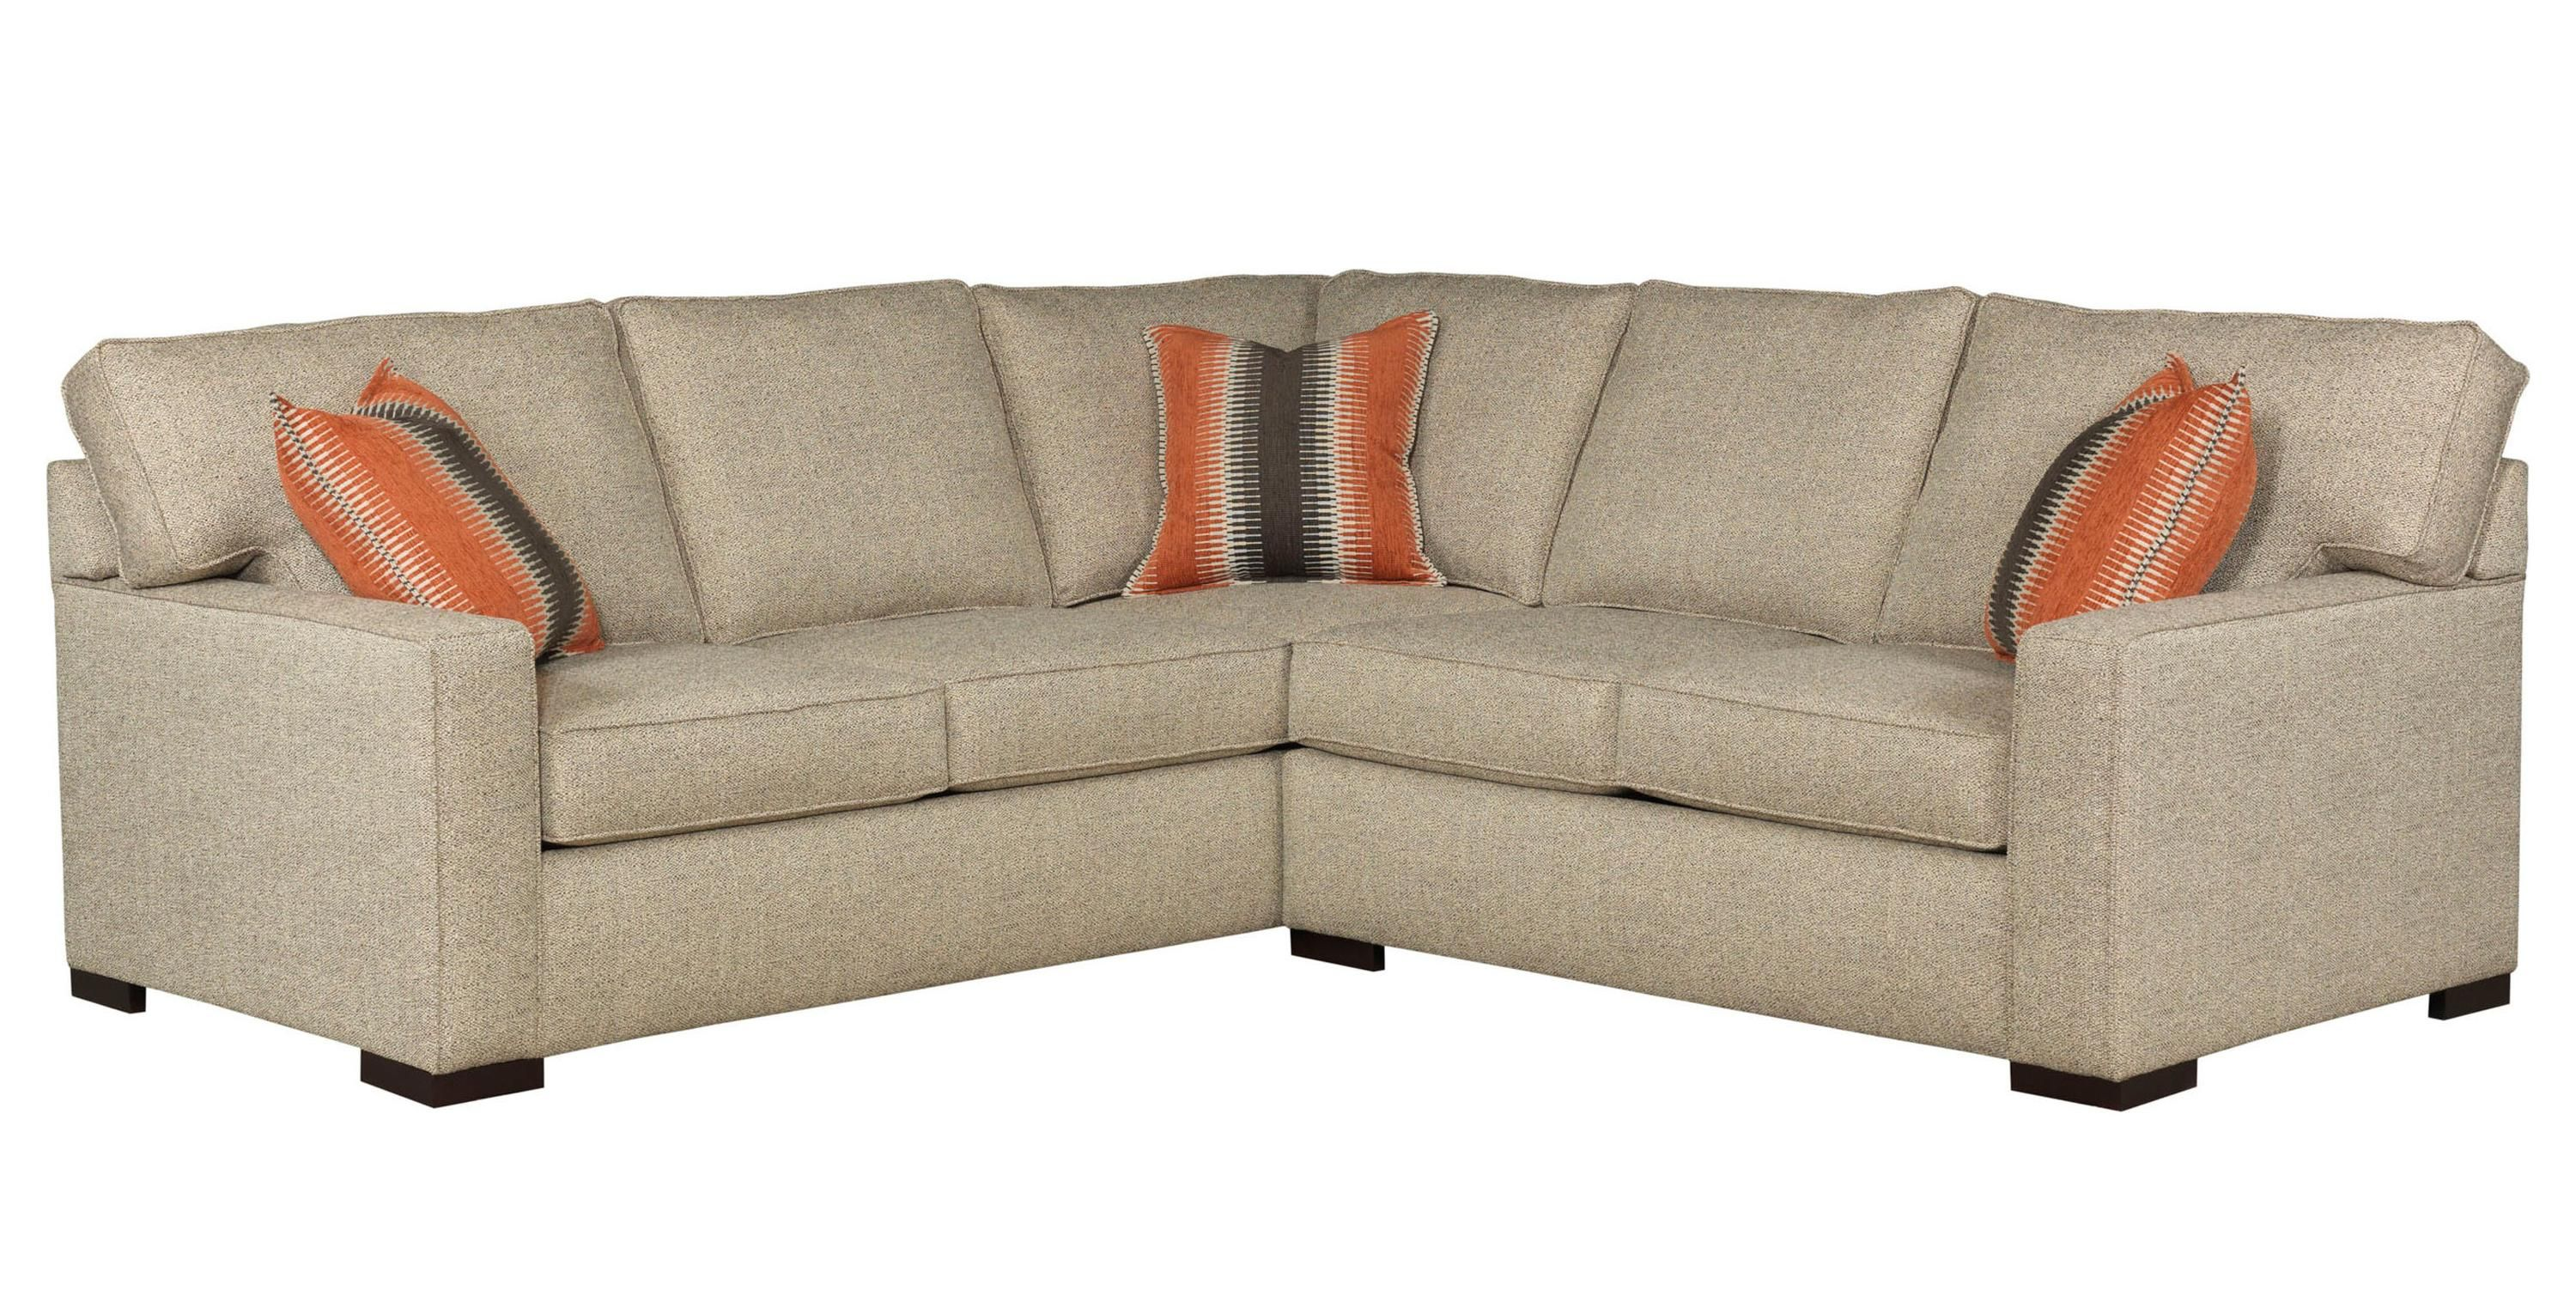 broyhill sofa nebraska furniture mart decoro leather manufacturers raphael contemporary two piece sectional with raf